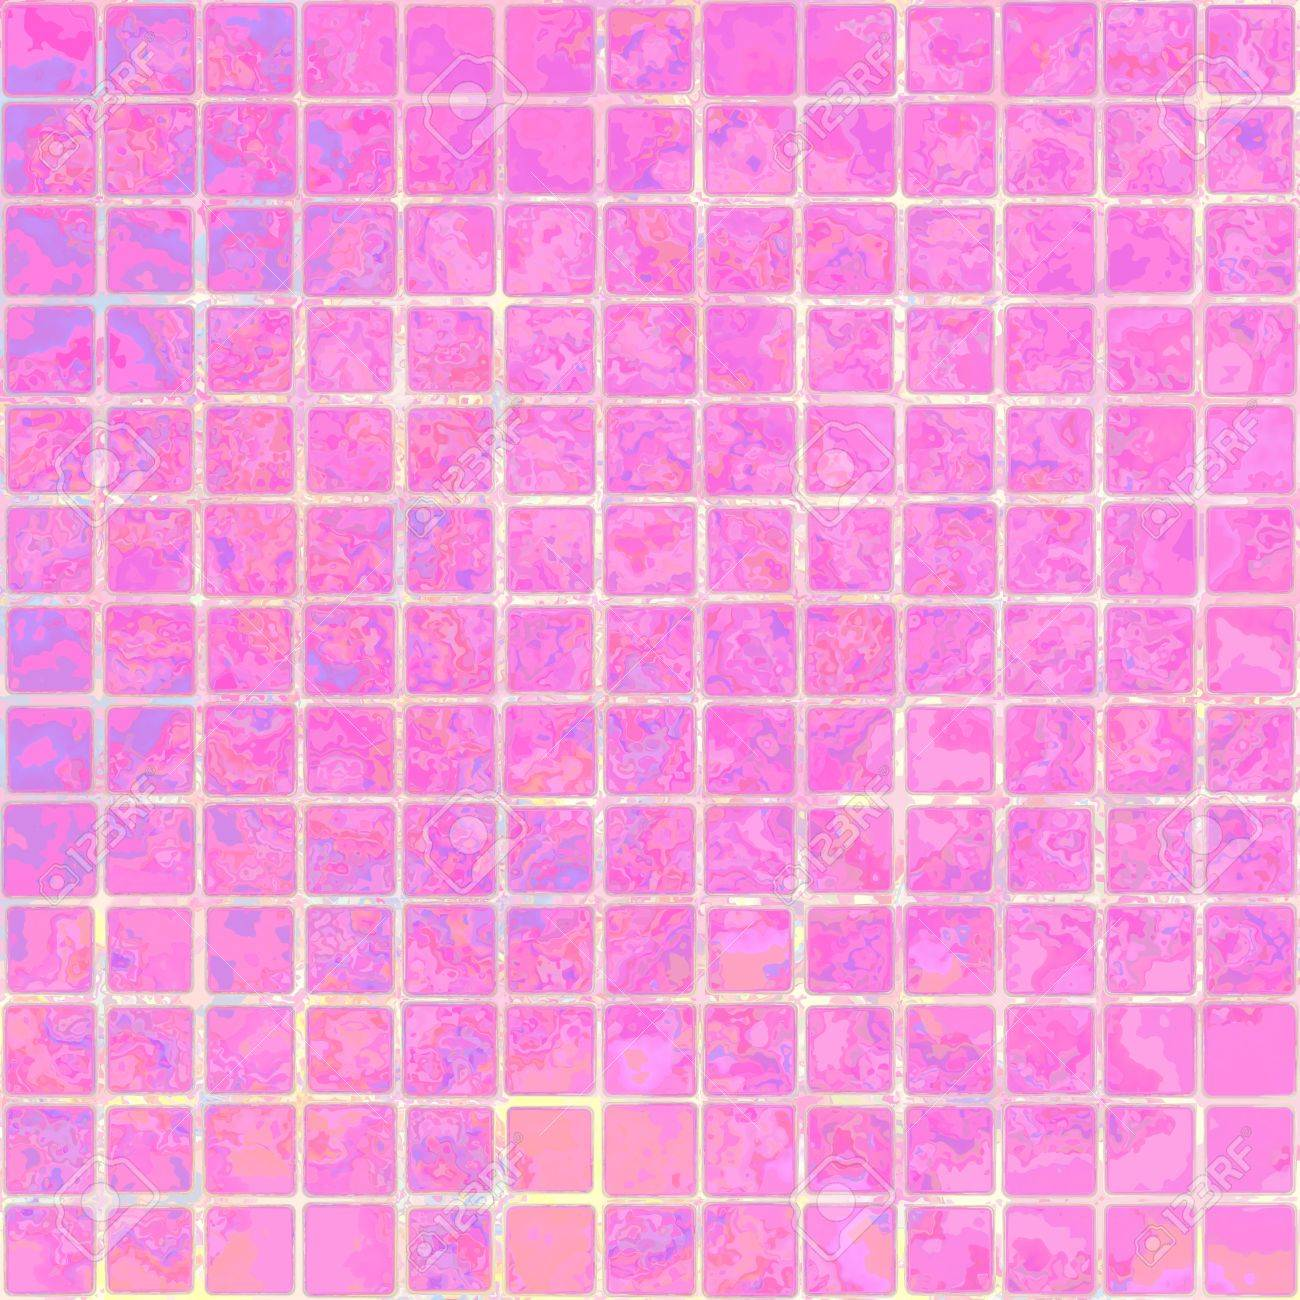 Sweet pink marble square floor tiles with light gap seamless sweet pink marble square floor tiles with light gap seamless pattern texture background stock photo dailygadgetfo Image collections